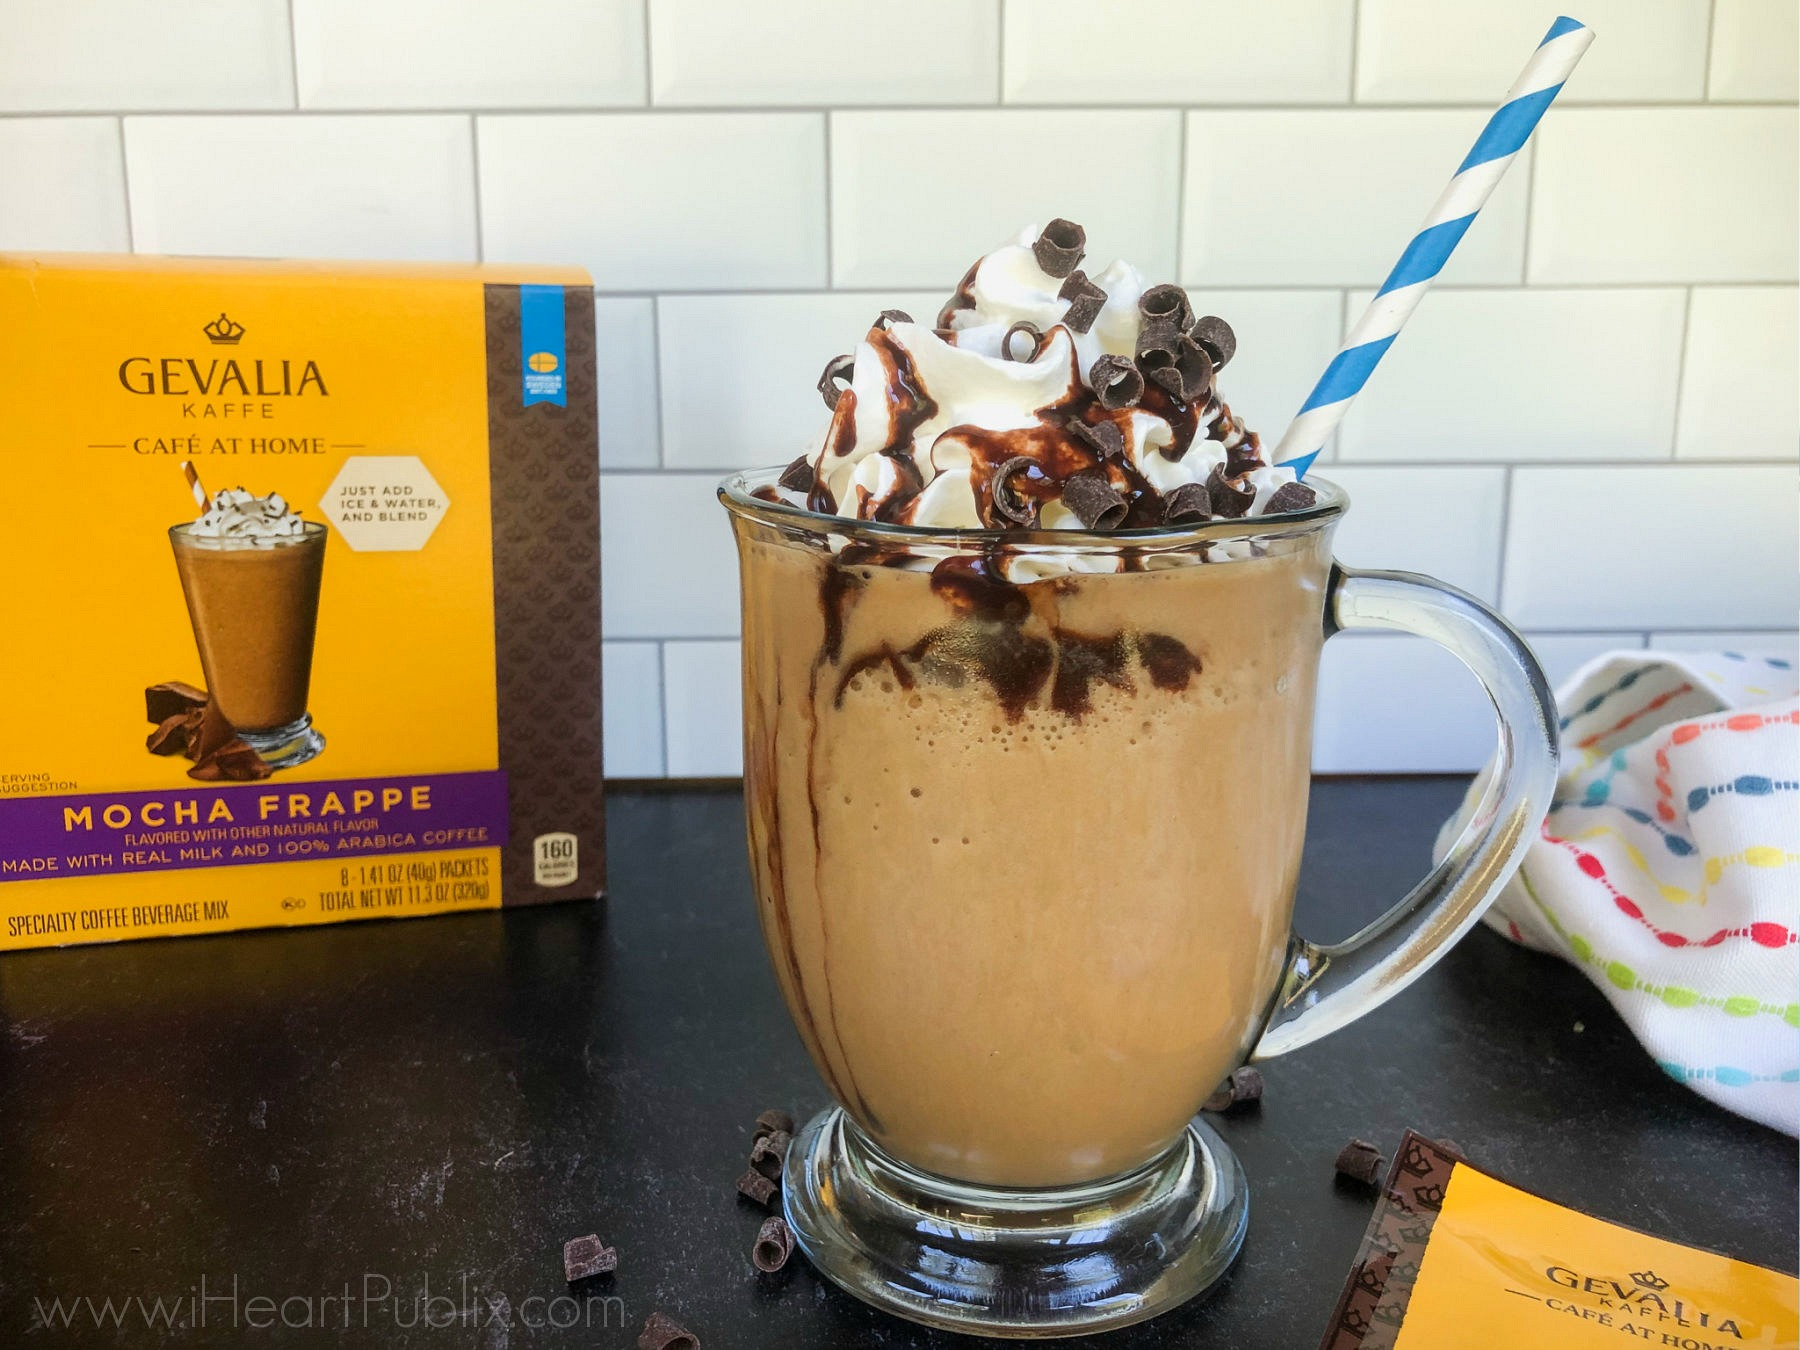 Gevalia Café at Home And Gevalia Frappe Products Are BOGO At Publix - Great Taste No Brewer Required! on I Heart Publix